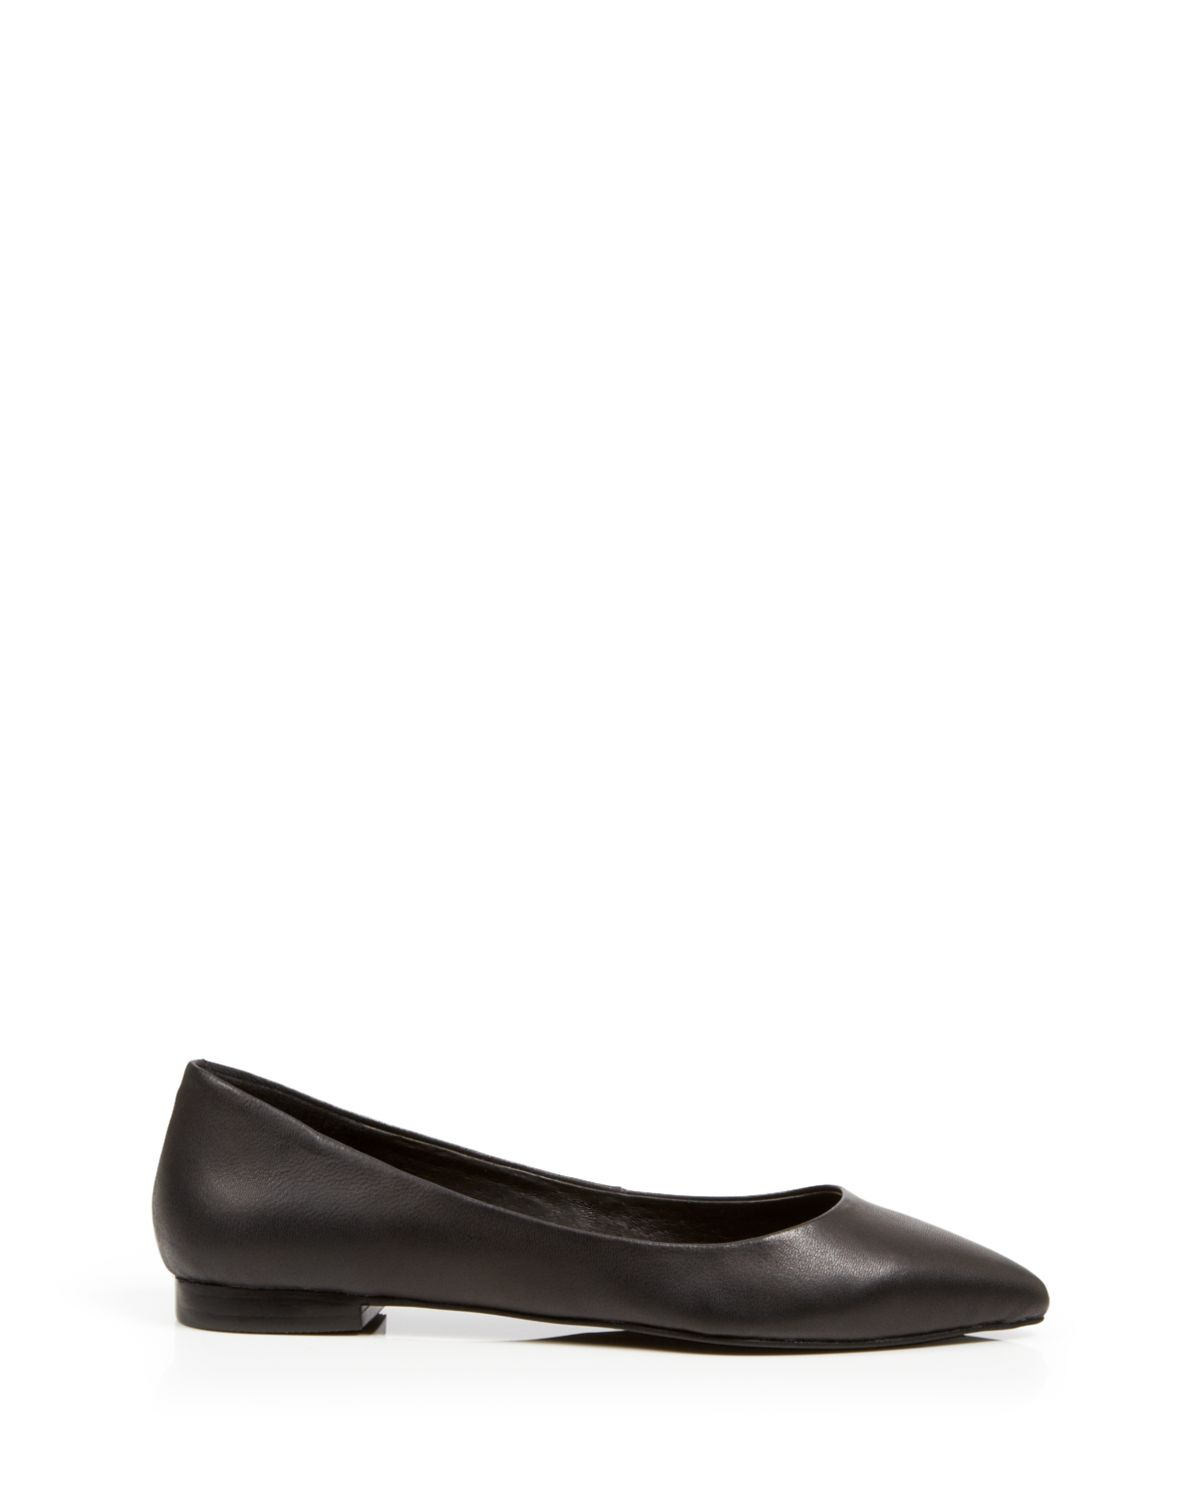 countdown package for sale low shipping sale online Jeffrey Campbell Leather Pointed-Toe Flats low cost cheap price qje7CrCt1Y